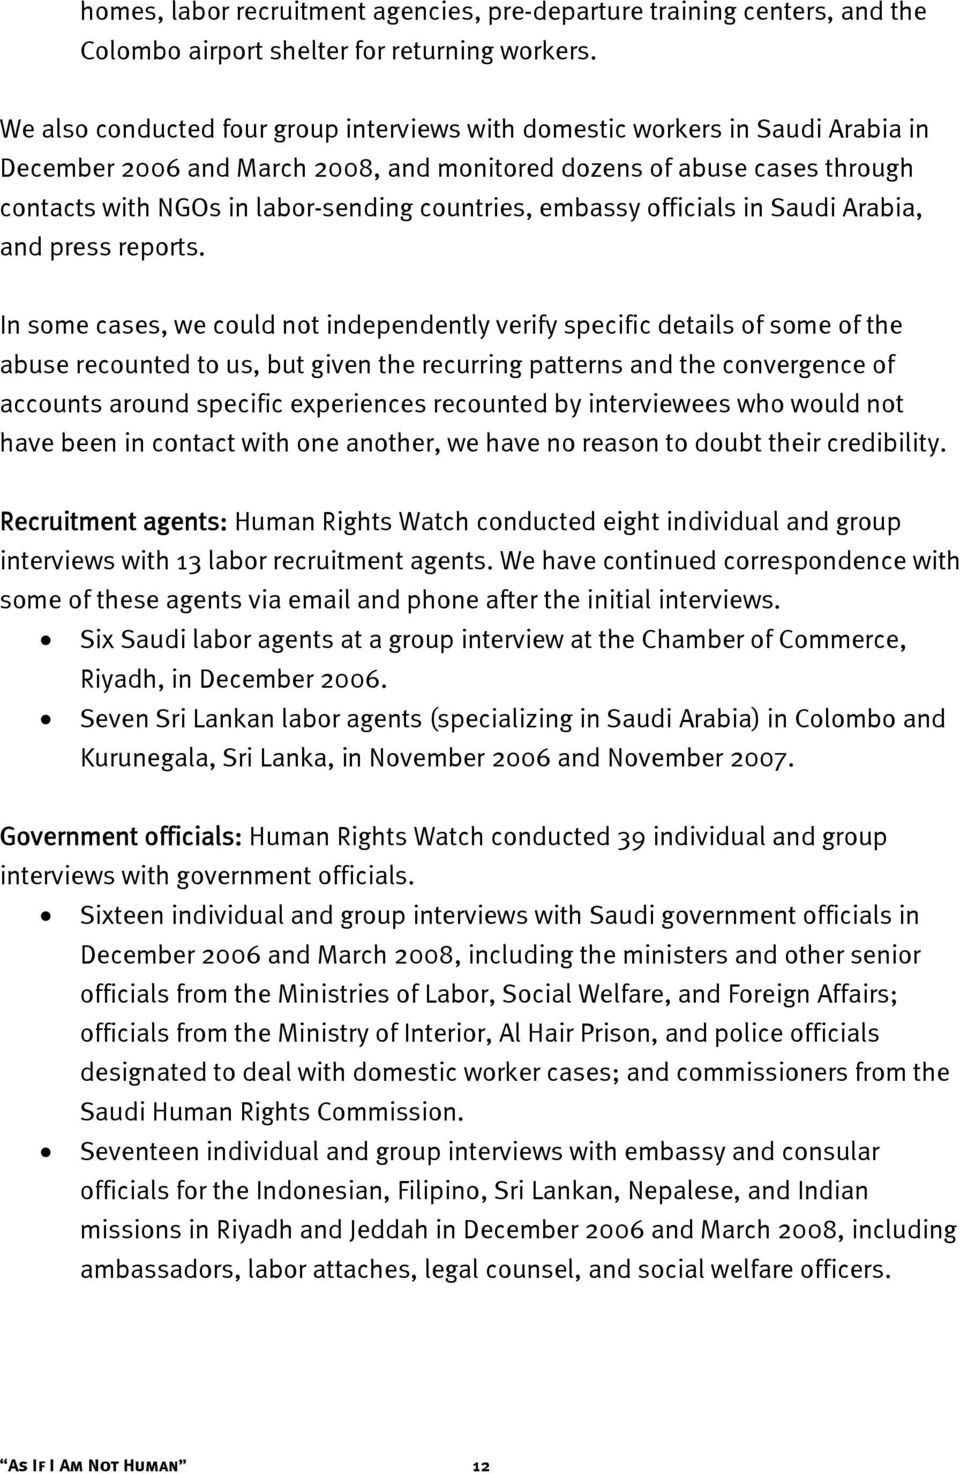 countries, embassy officials in Saudi Arabia, and press reports.